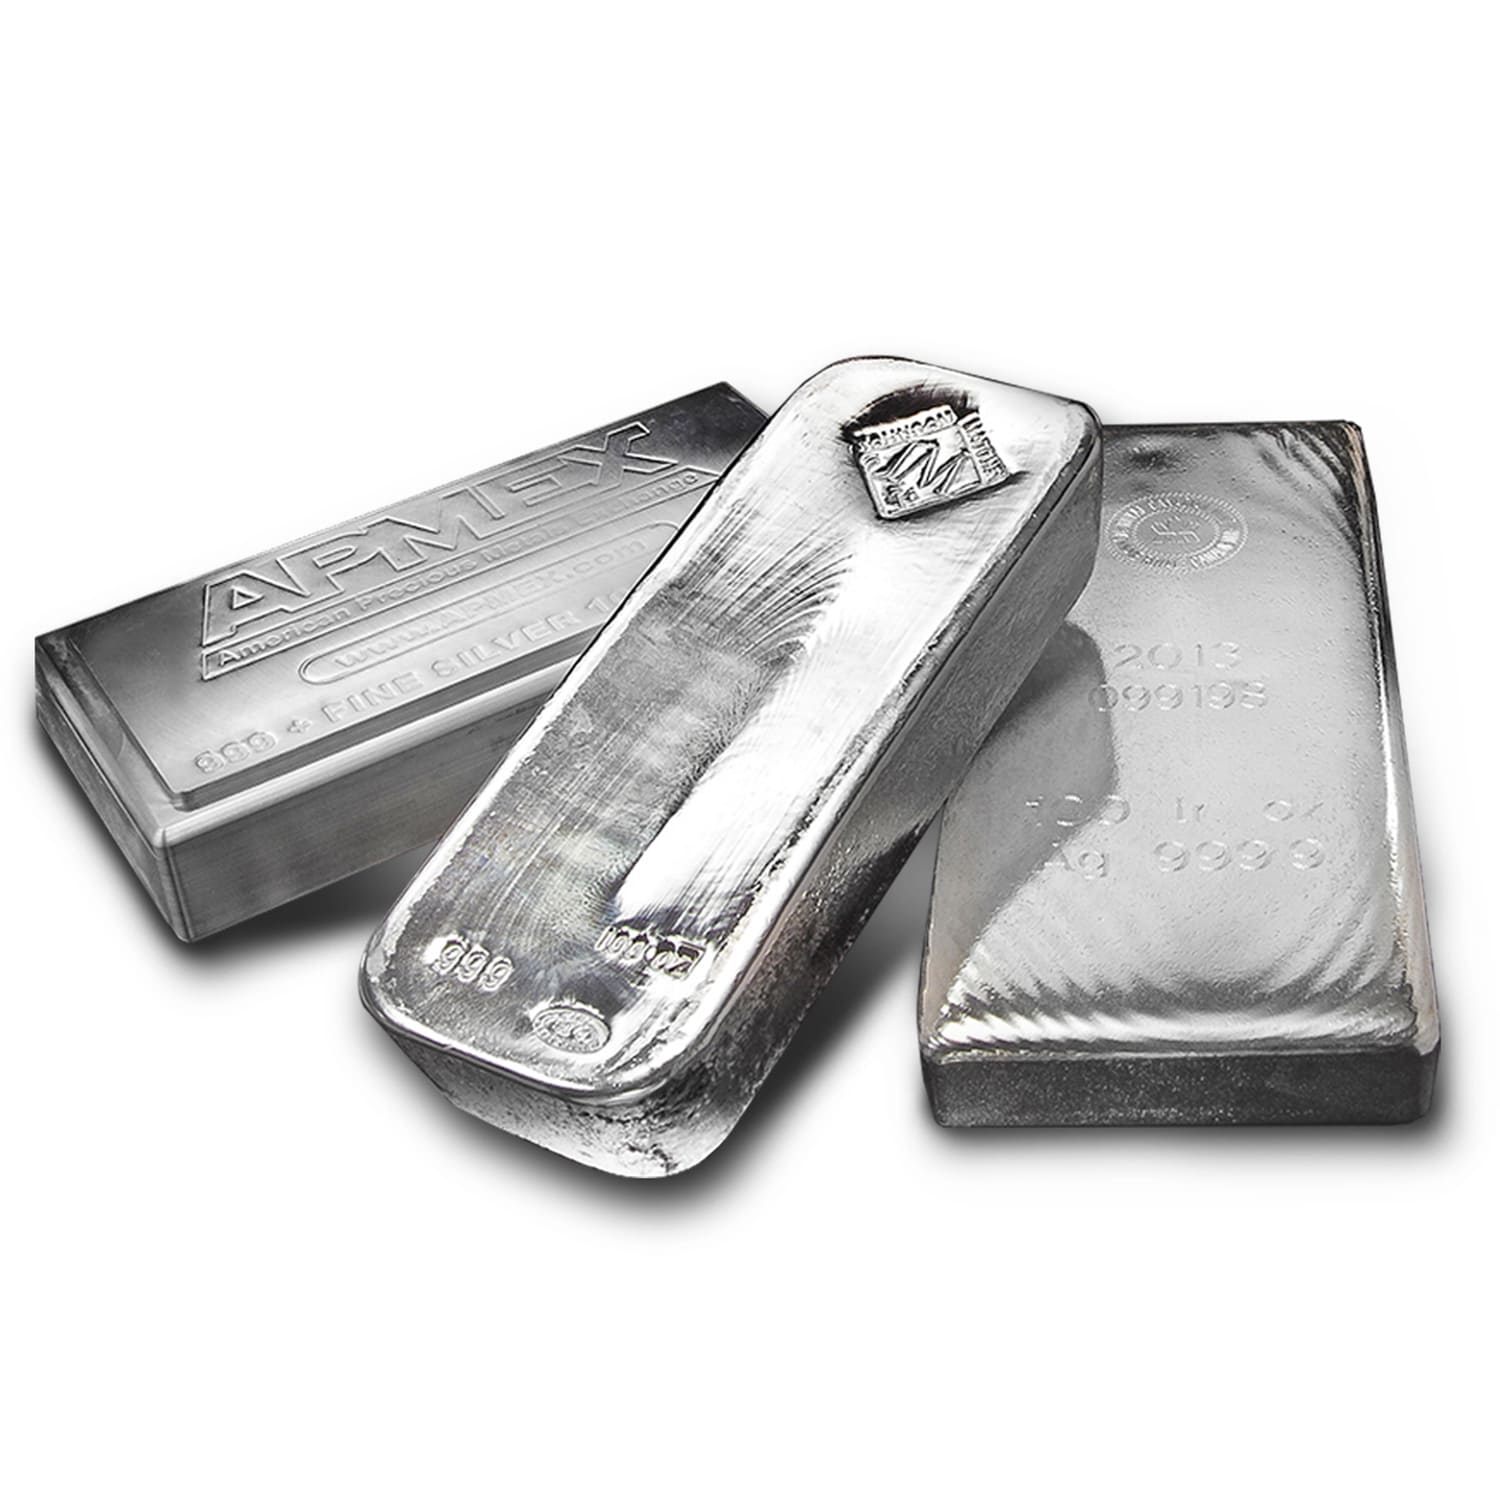 97.25 oz Silver Bar - Secondary Market